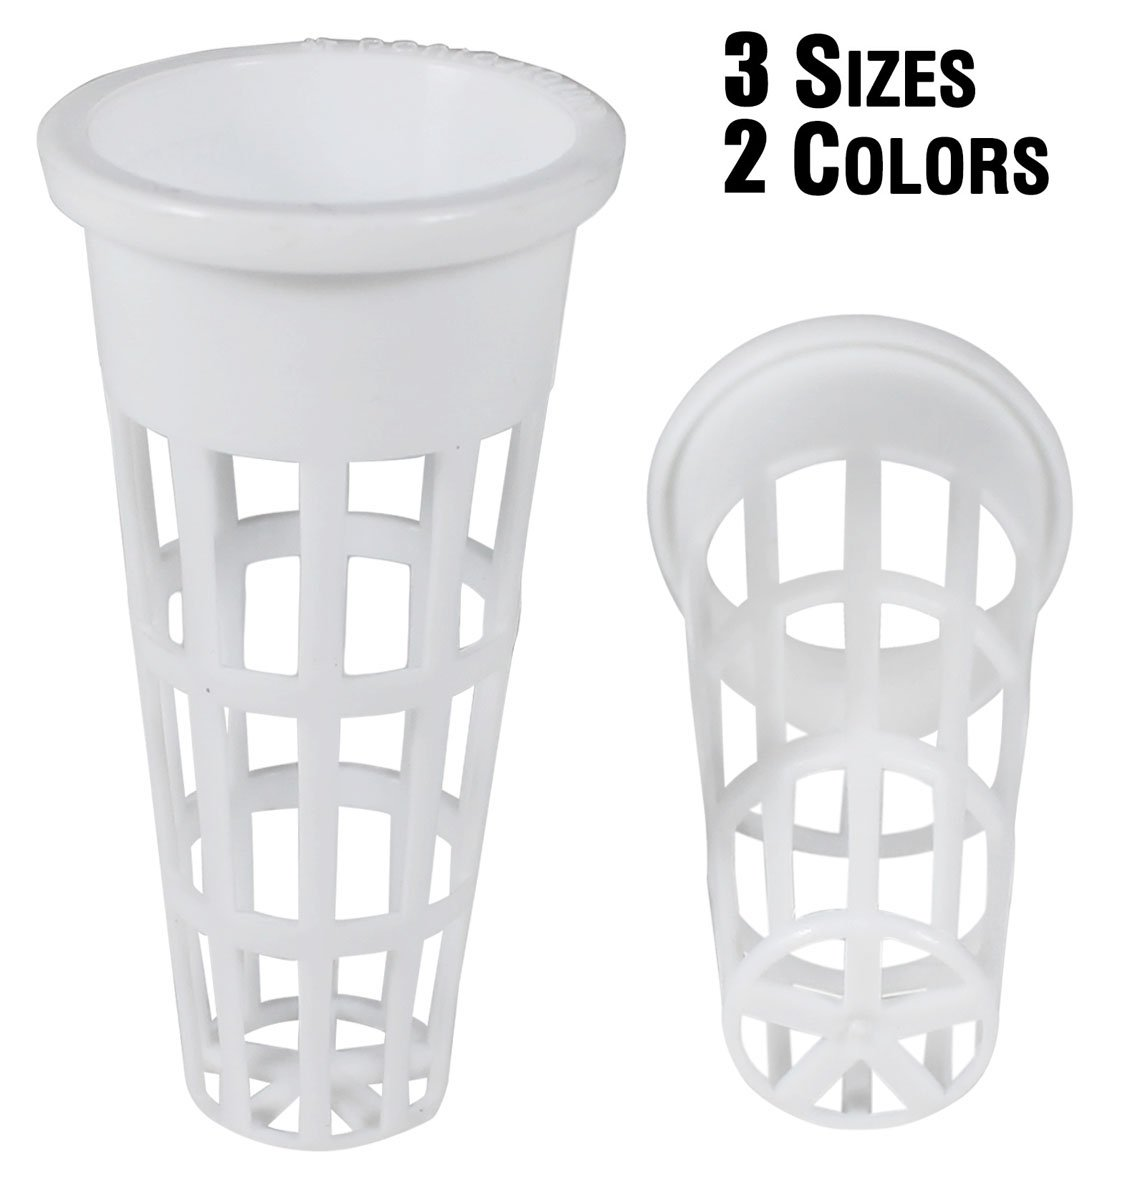 NP1DW: 7/8 Inch White Slotted Mesh Net Pot for Hydroponics/Aquaponics/Orchids - 2700 Carton by PonicsFarm